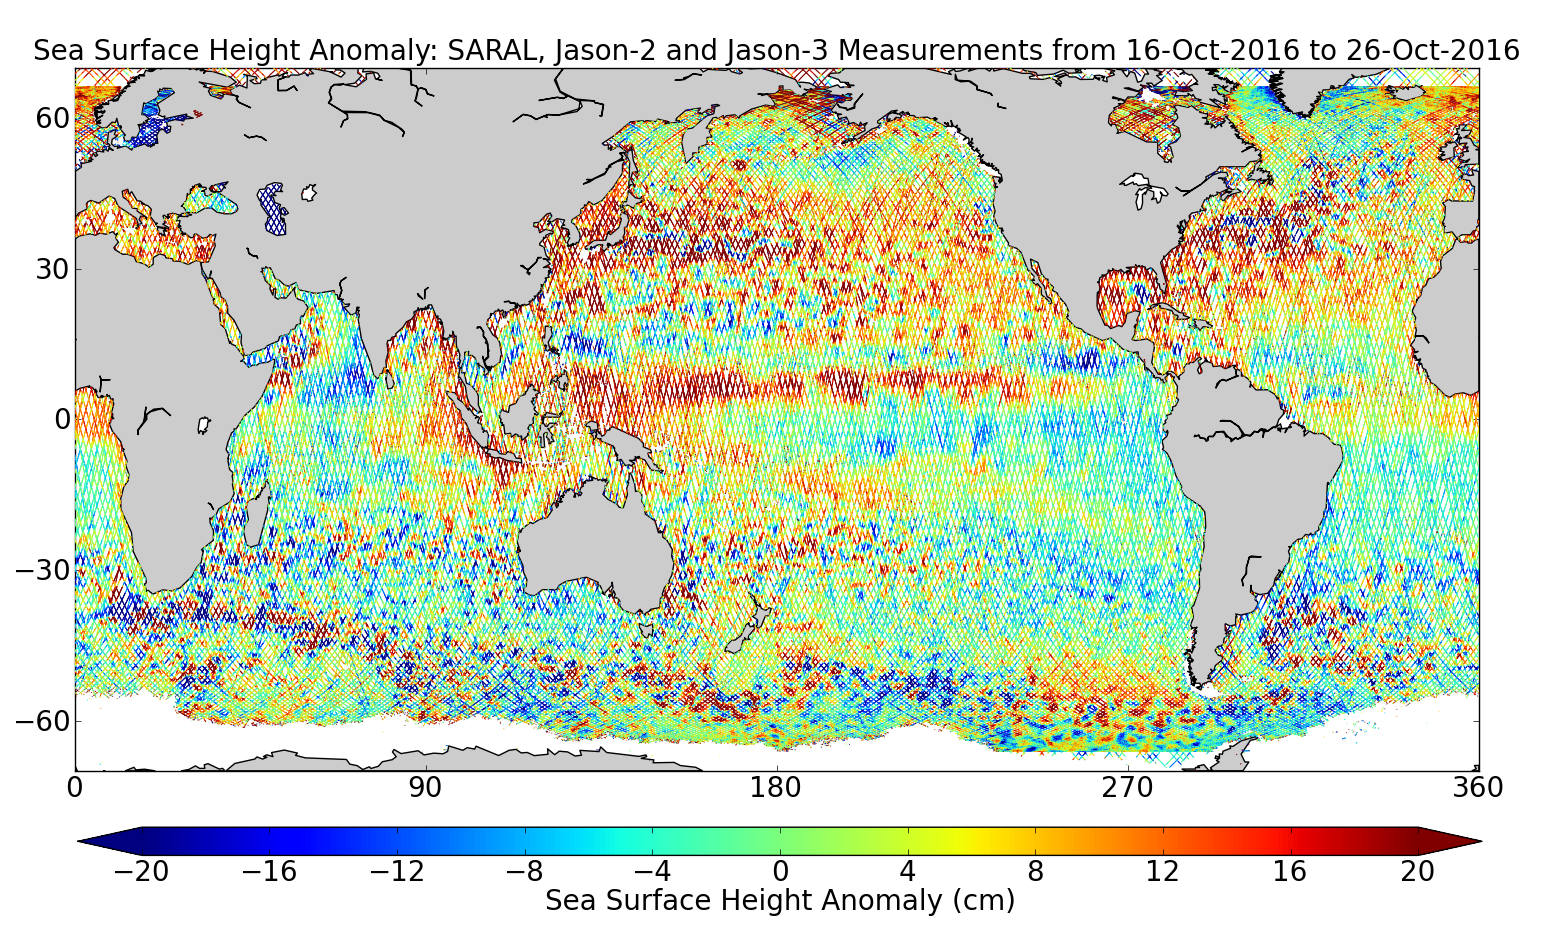 Sea Surface Height Anomaly: SARAL, Jason-2 and Jason-3 Measurements from 16-Oct-2016 to 26-Oct-2016